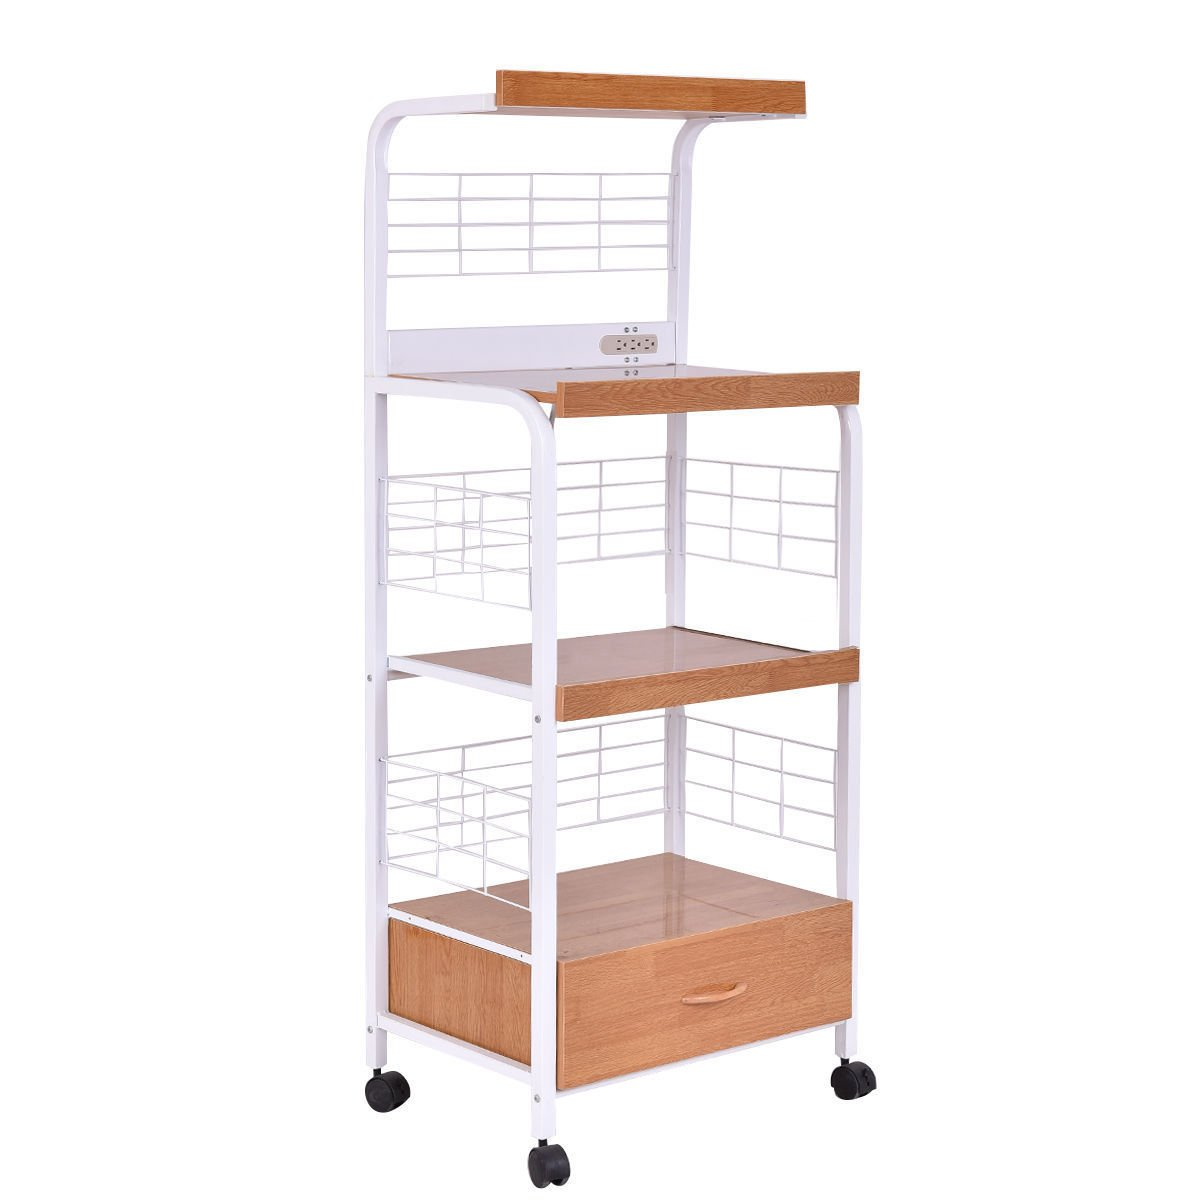 Bakers Rack Microwave Stand Rolling Kitchen Storage Cart with Electric Outlet 62'' by Shining